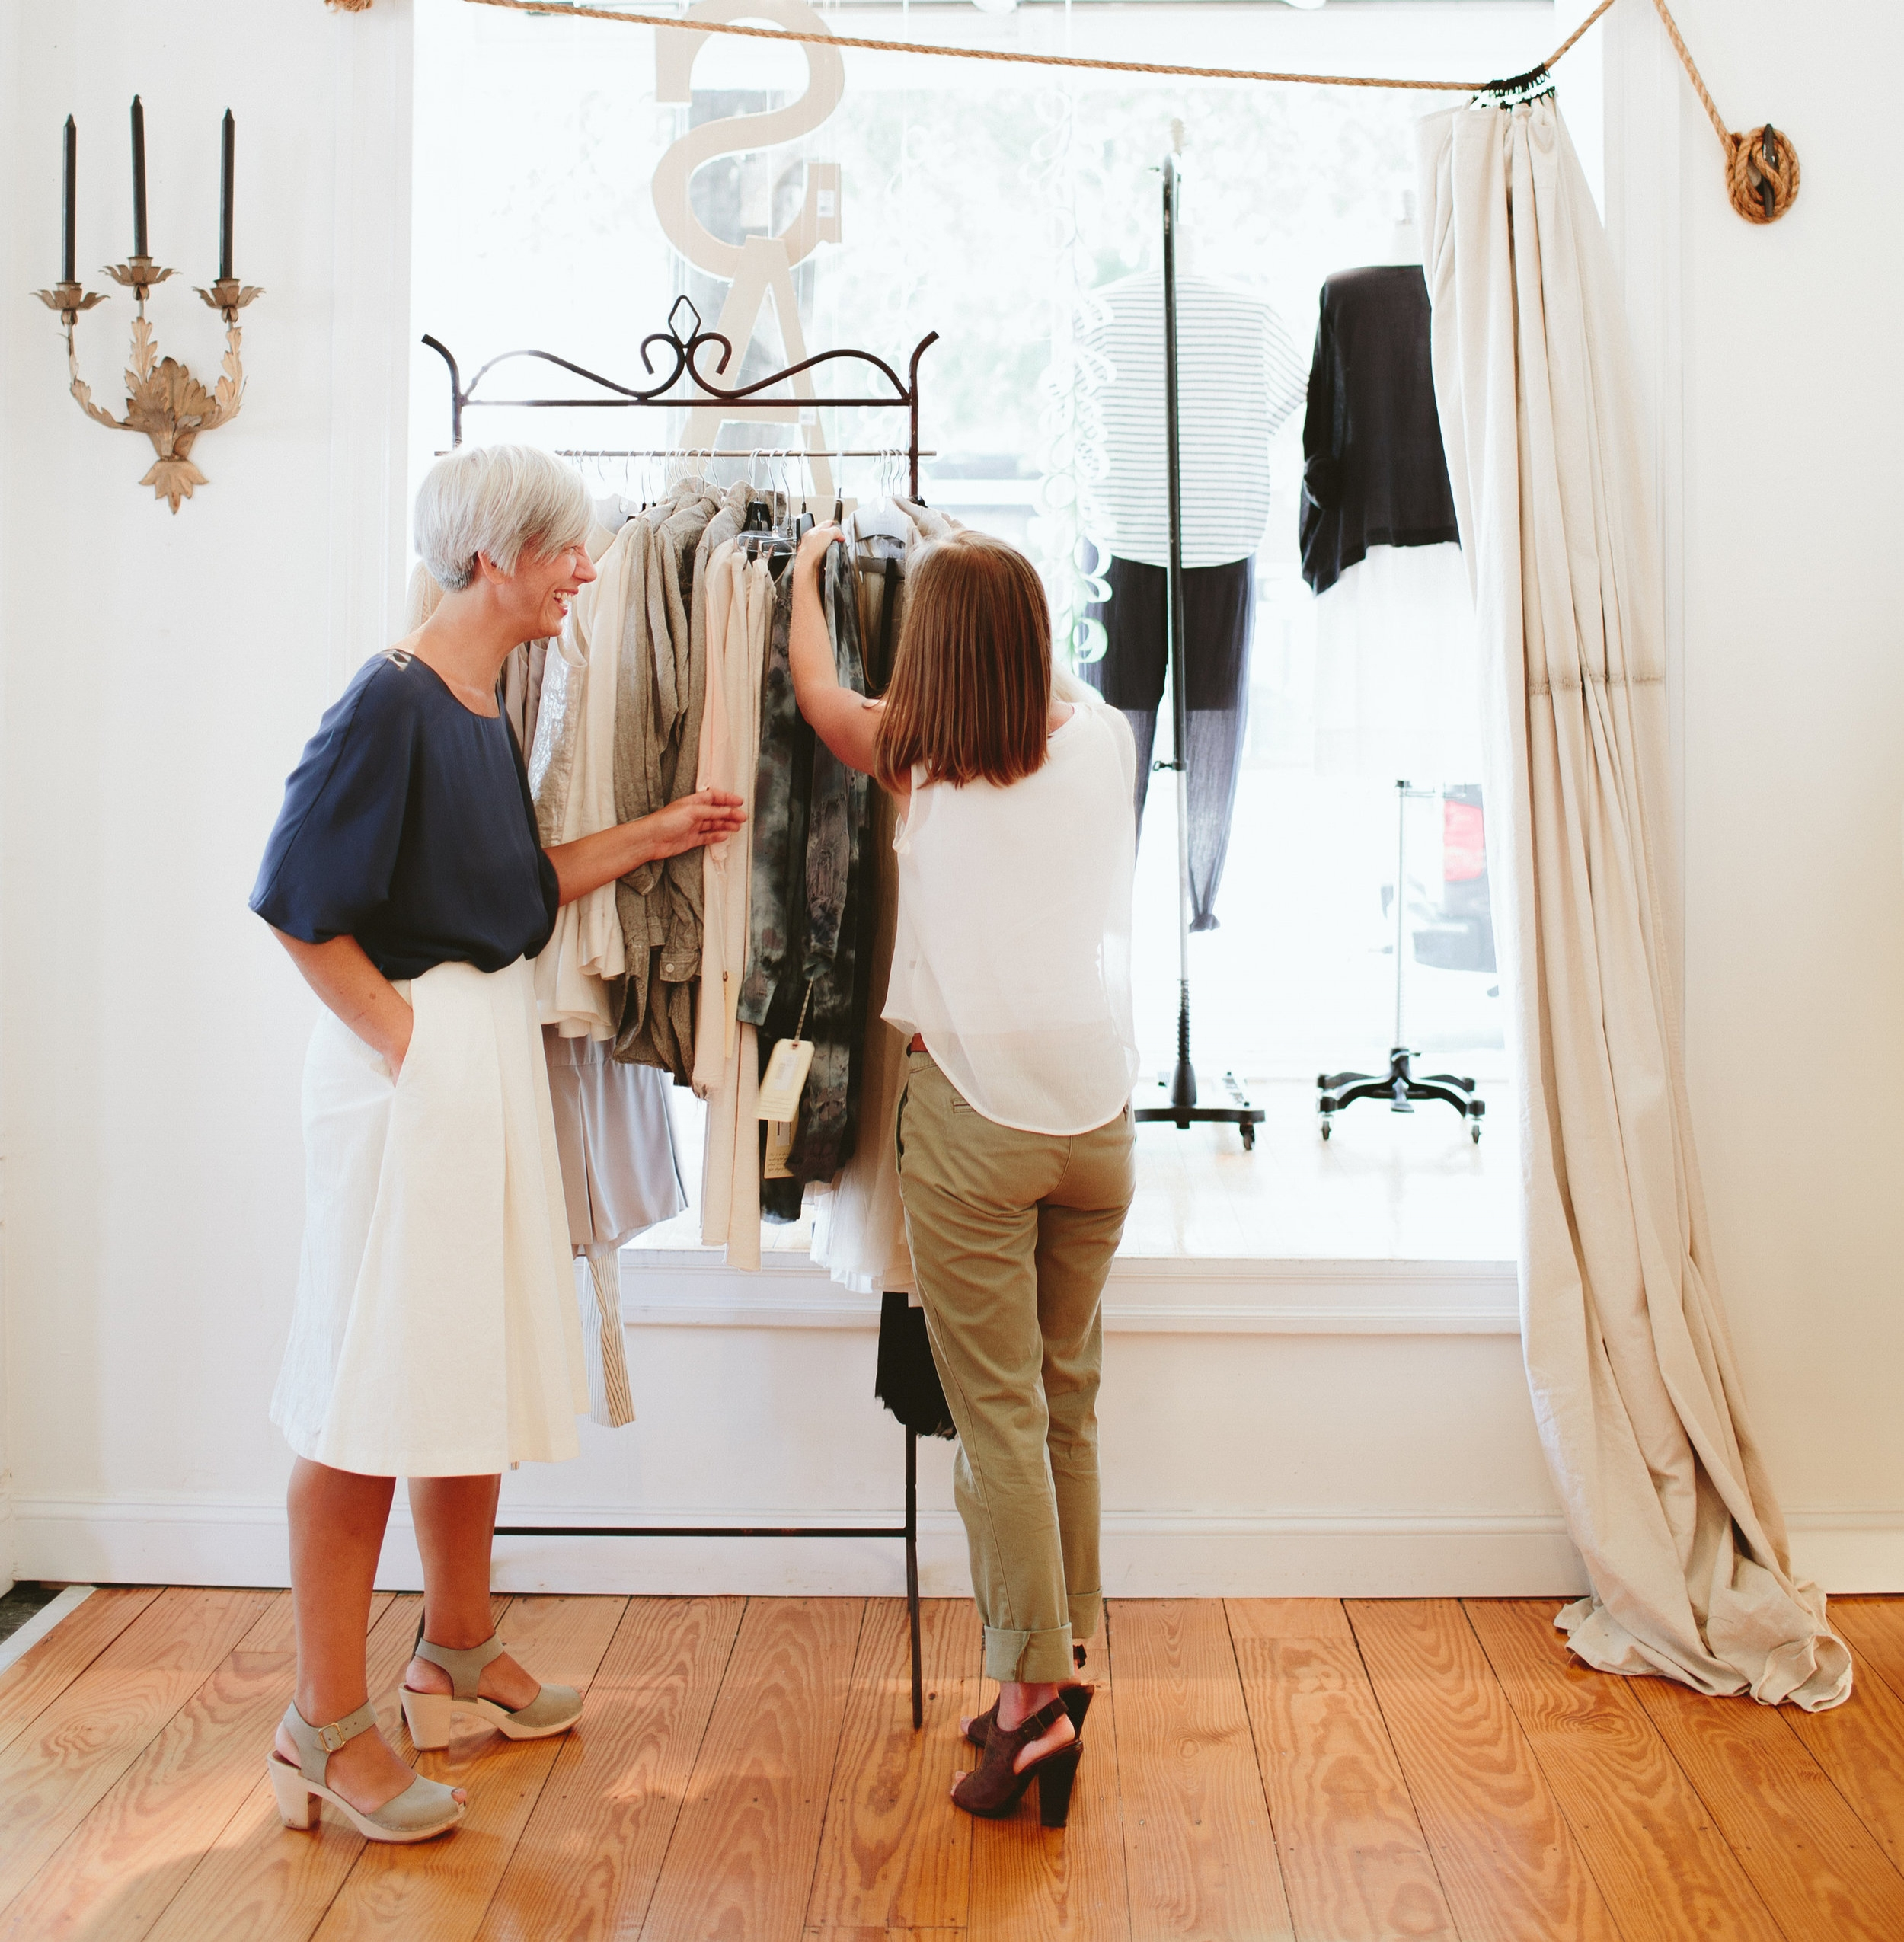 ARE YOU READY - TO STOP WASTING MONEY ON CLOTHES THAT YOU NEVER WEAR?TO CLEAN OUT AND ORGANIZE YOUR CLOSET?TO FINALLY DISCOVER YOUR OWN PERSONAL STYLE?TAKE OUR FREE PERSONAL STYLE QUESTIONNAIRE NOW